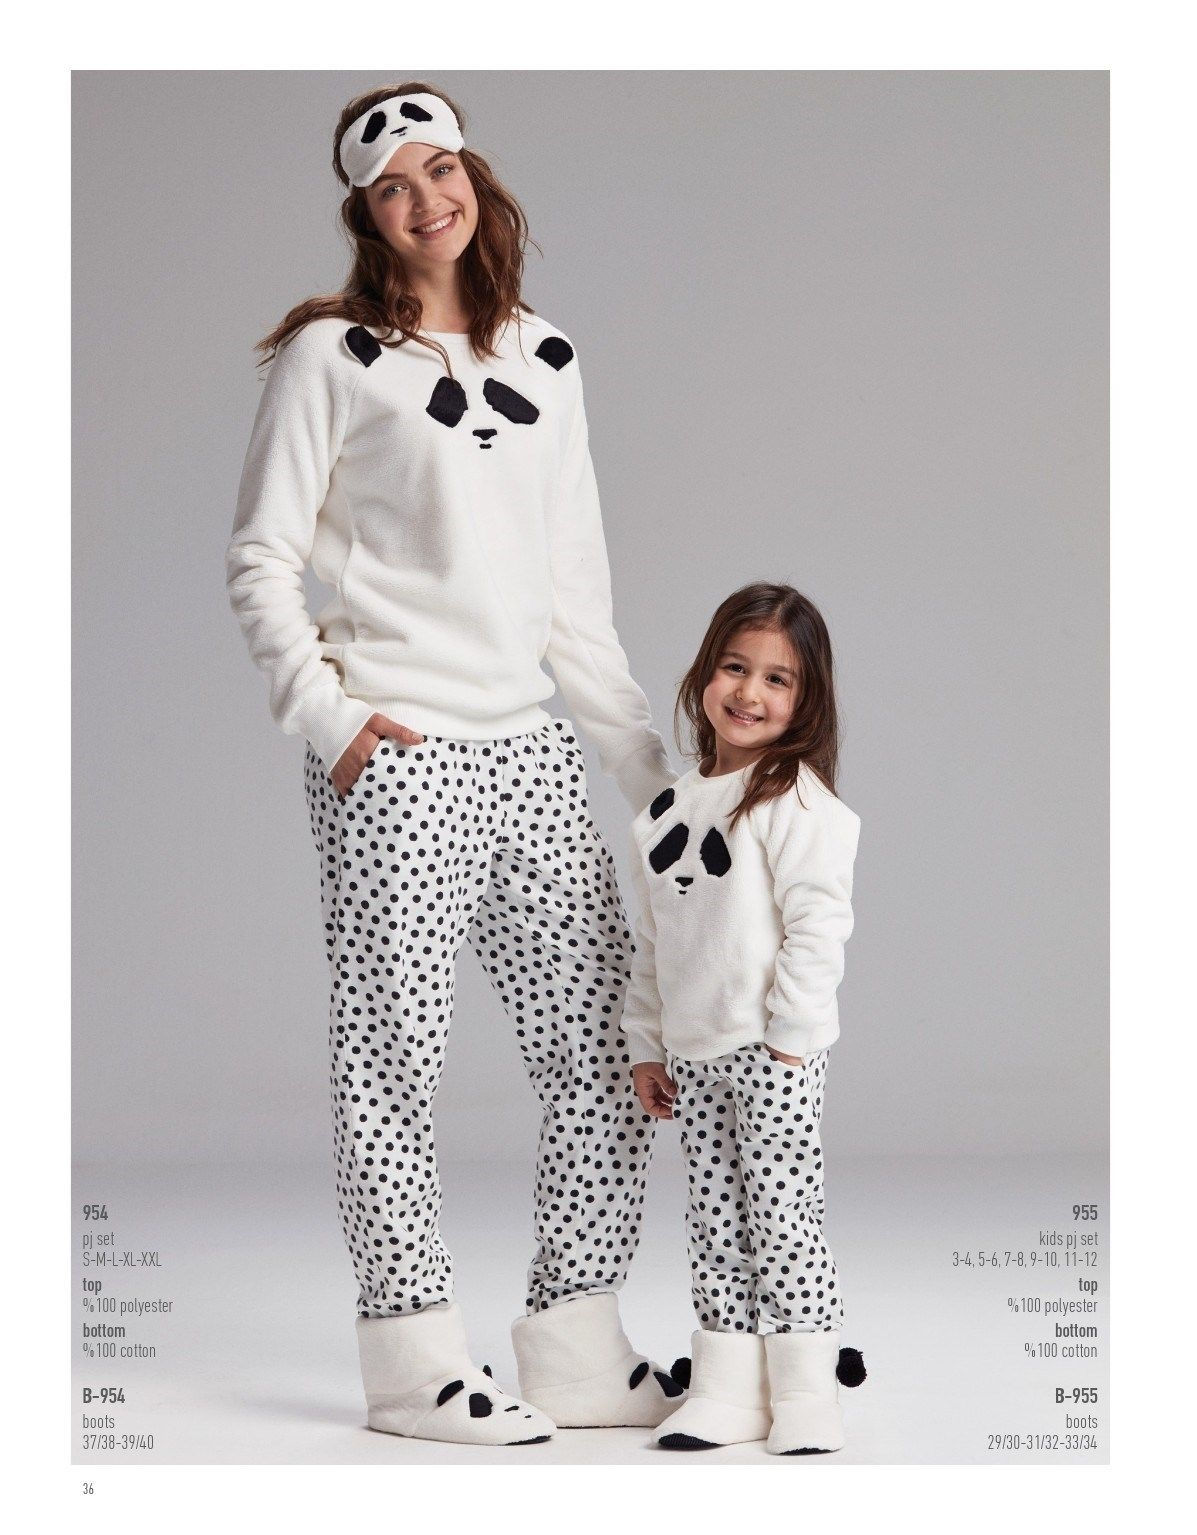 e598551ba2 Discover ideas about Pijamas Mujer